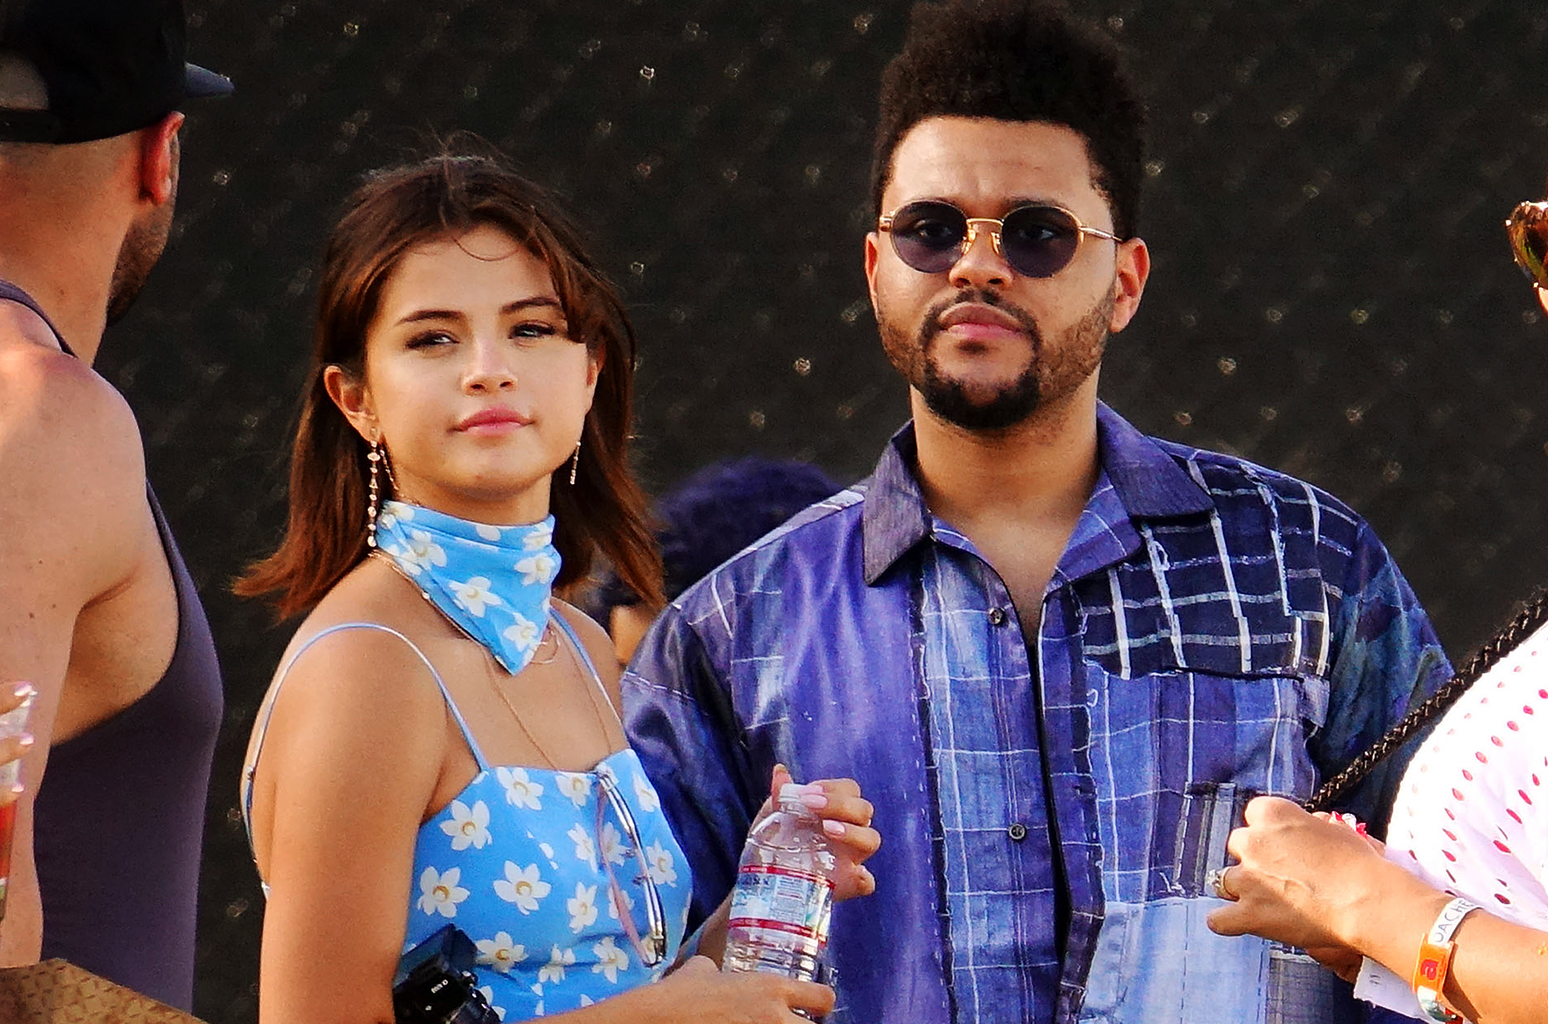 The Weeknd hints that he offered Selena Gomez his kidney